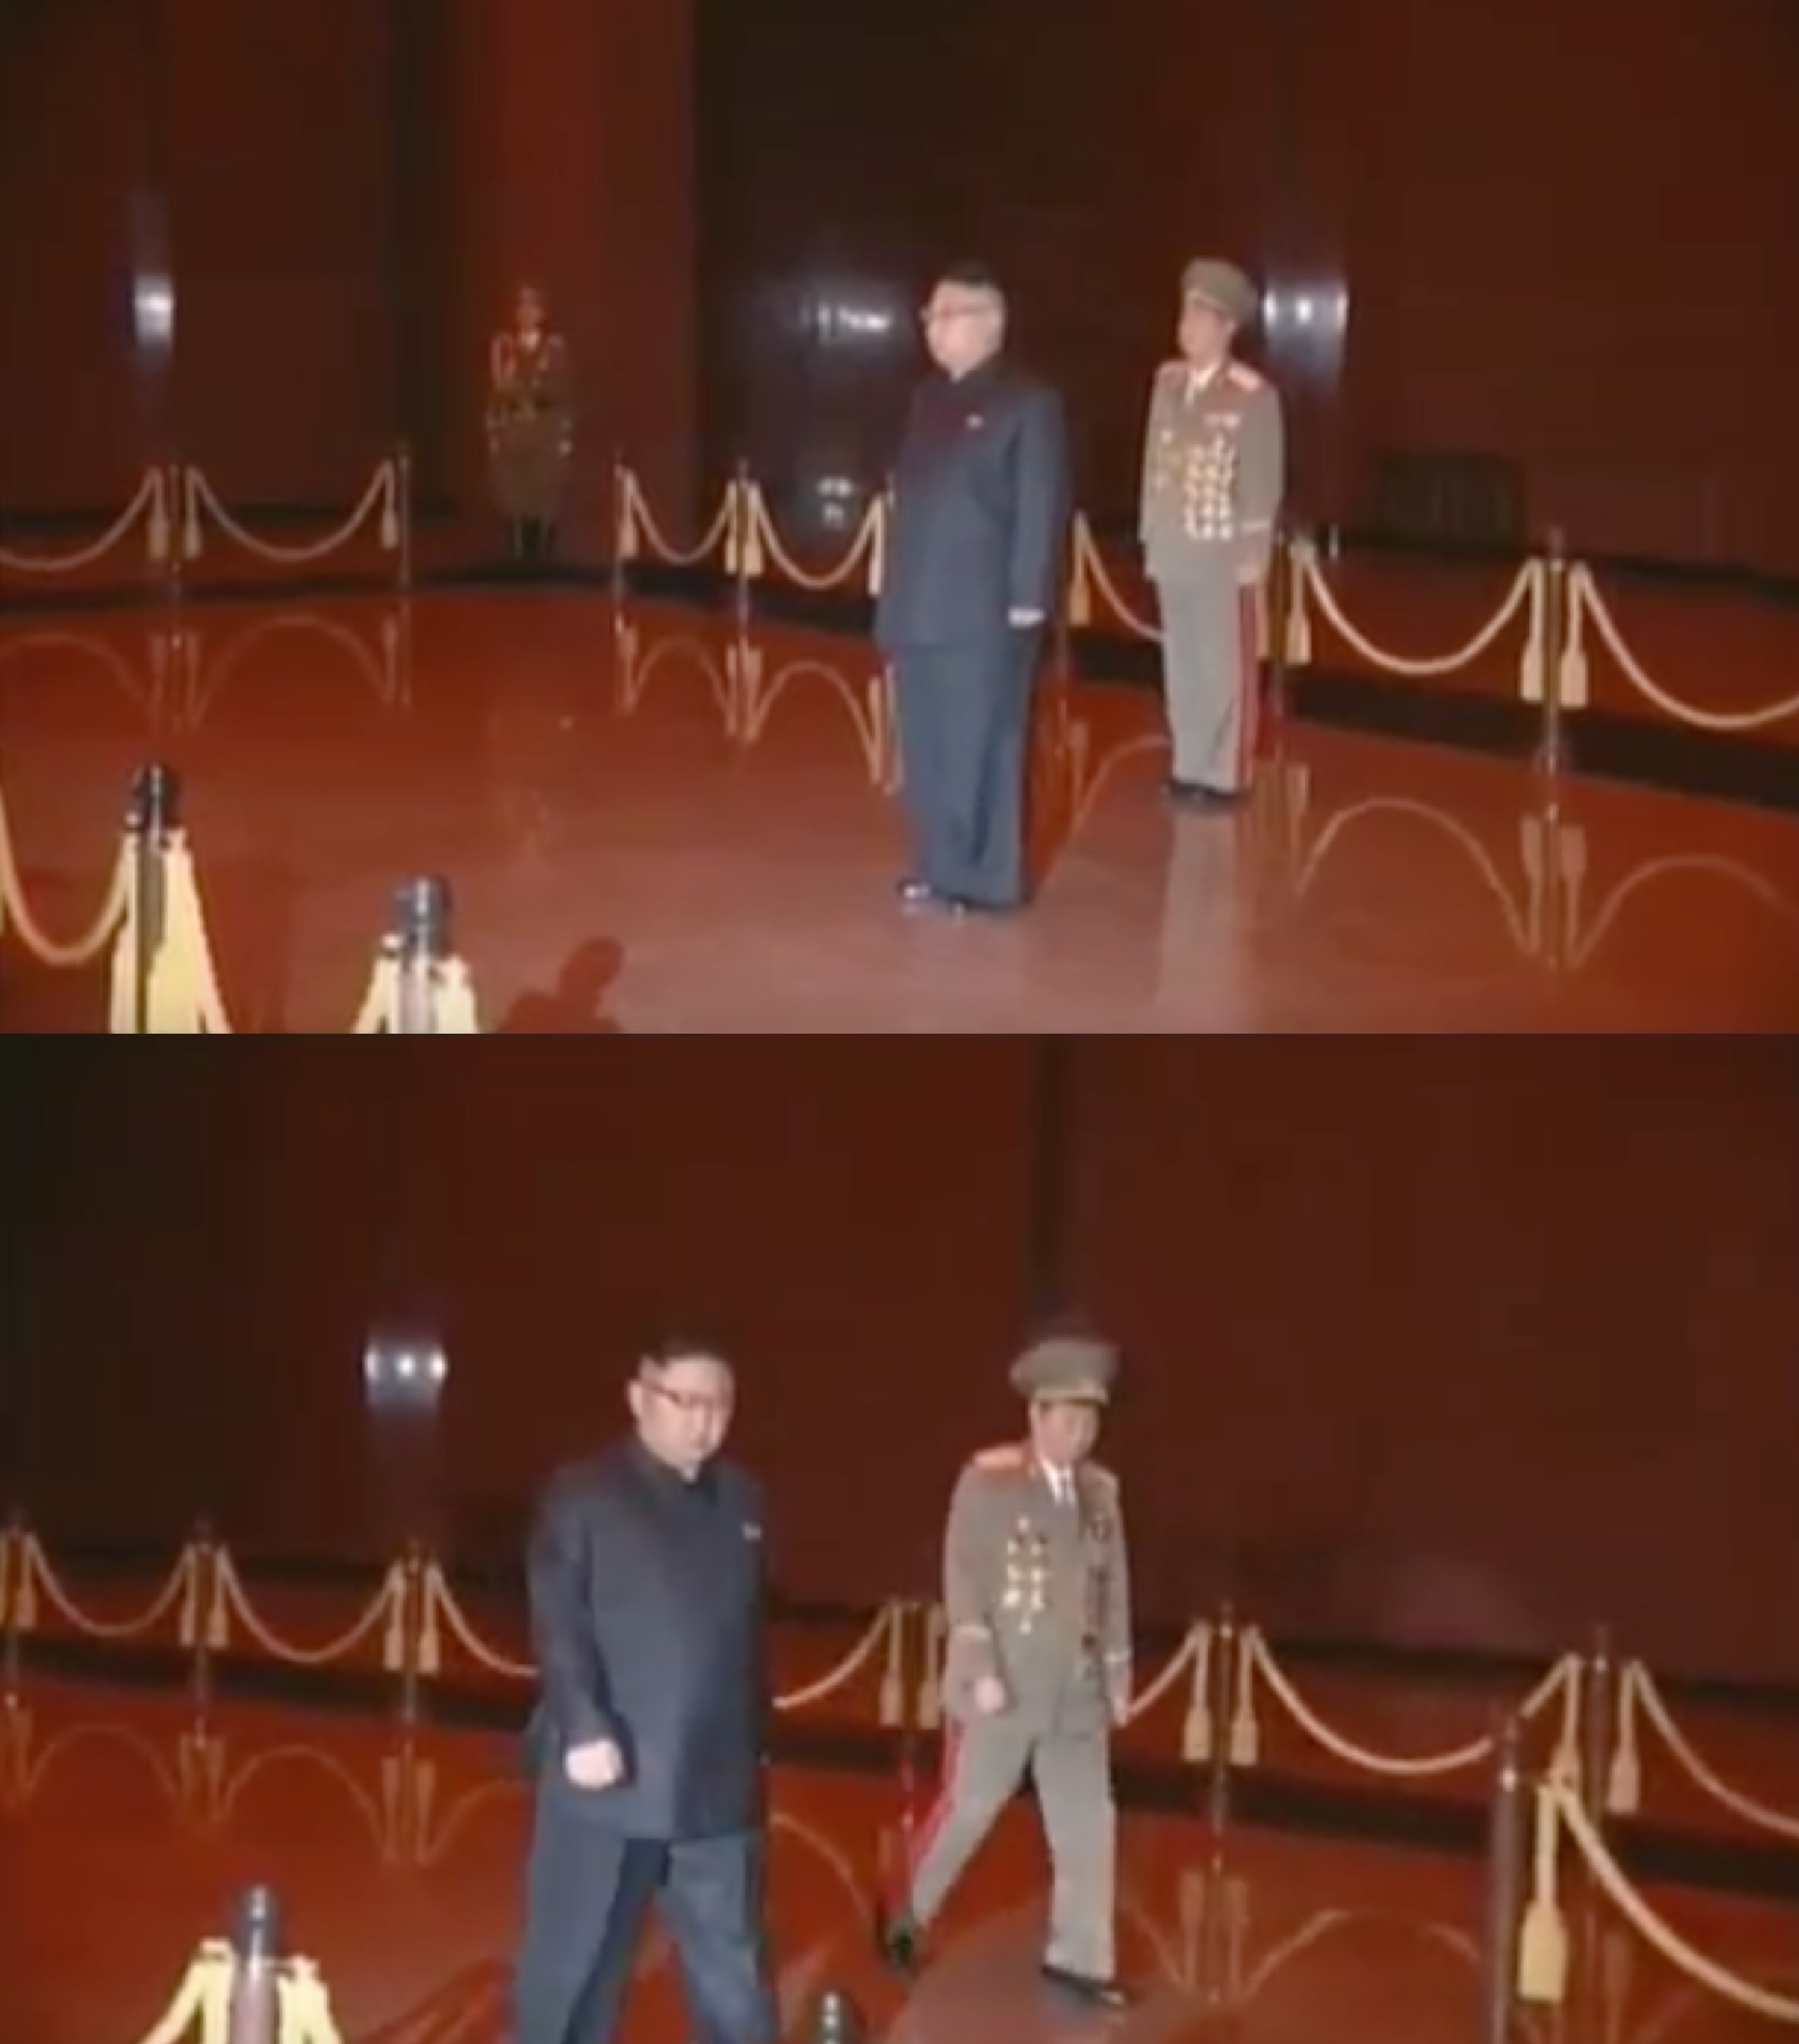 Kim Jong Un in the chamber containing the preserved remains of his father on February 16, 2017 (Photo: Korean Central Television).